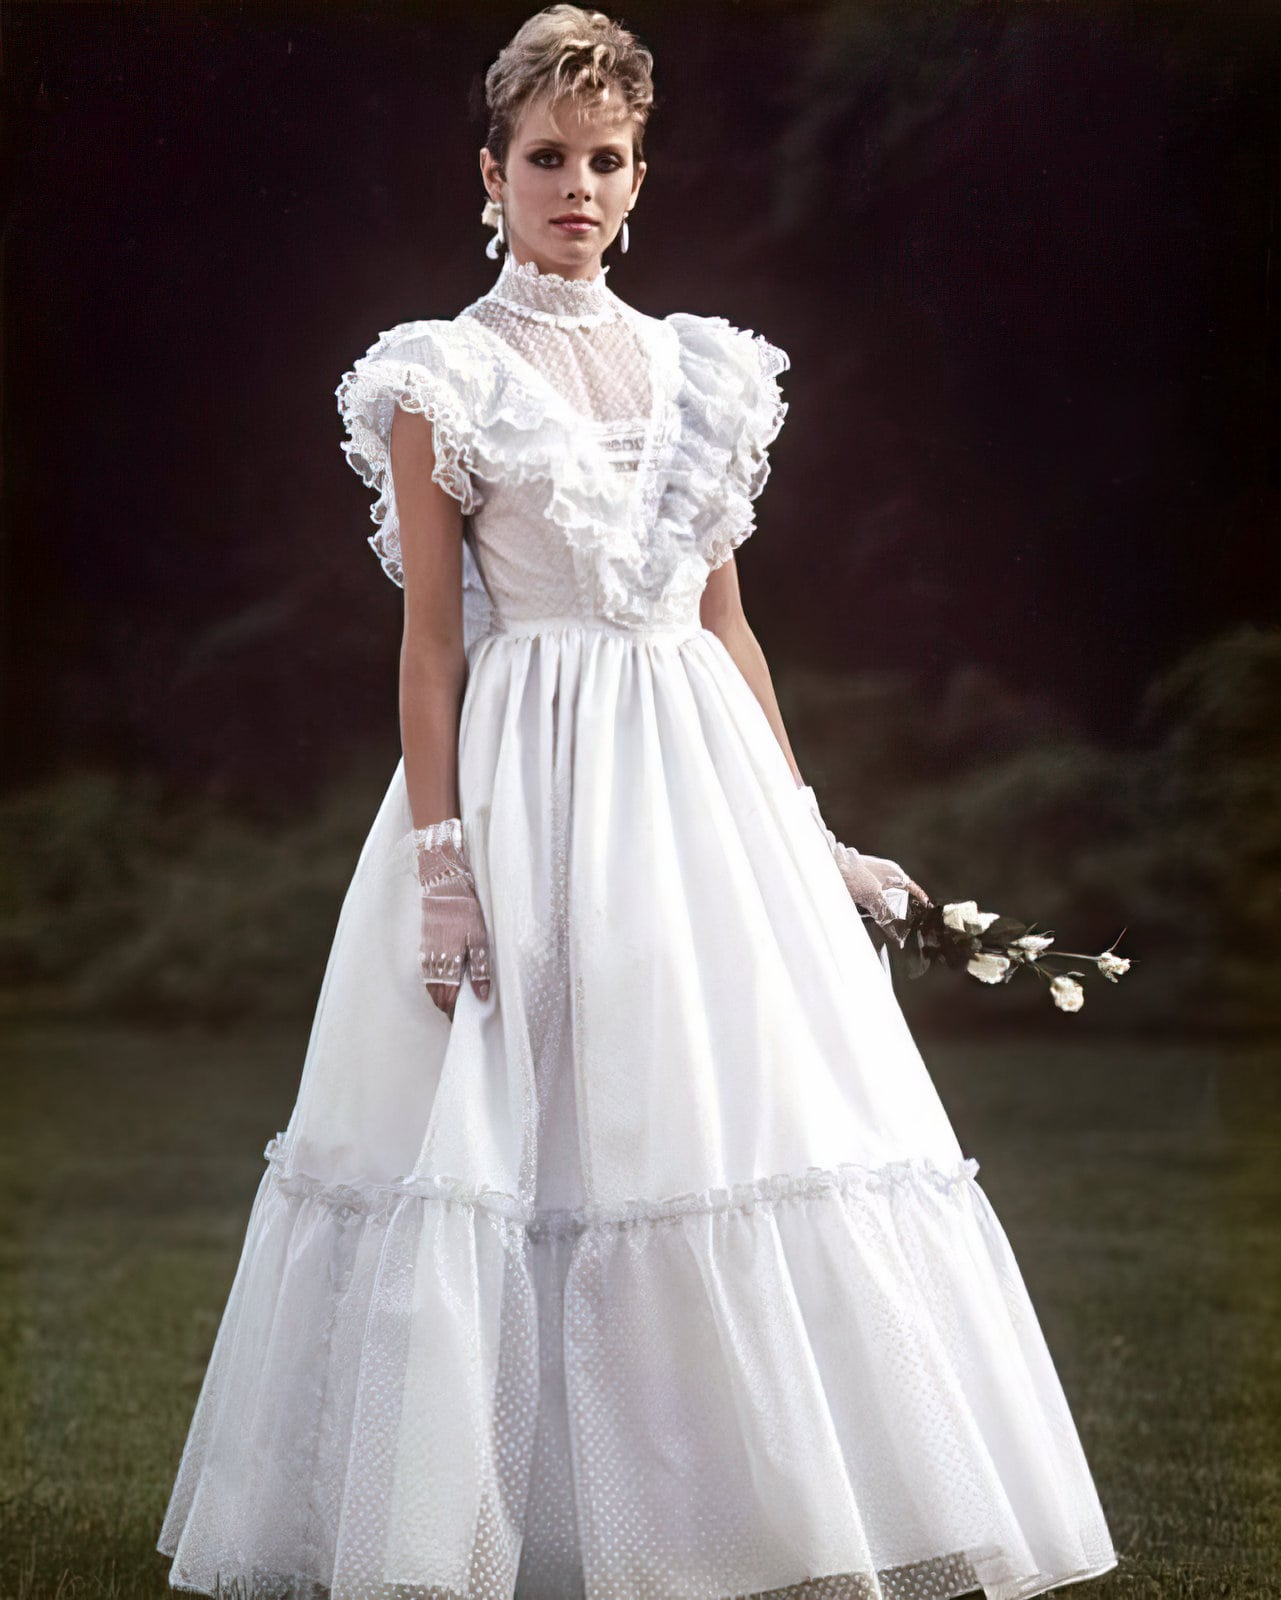 Lacy white mid-80s prom dress style